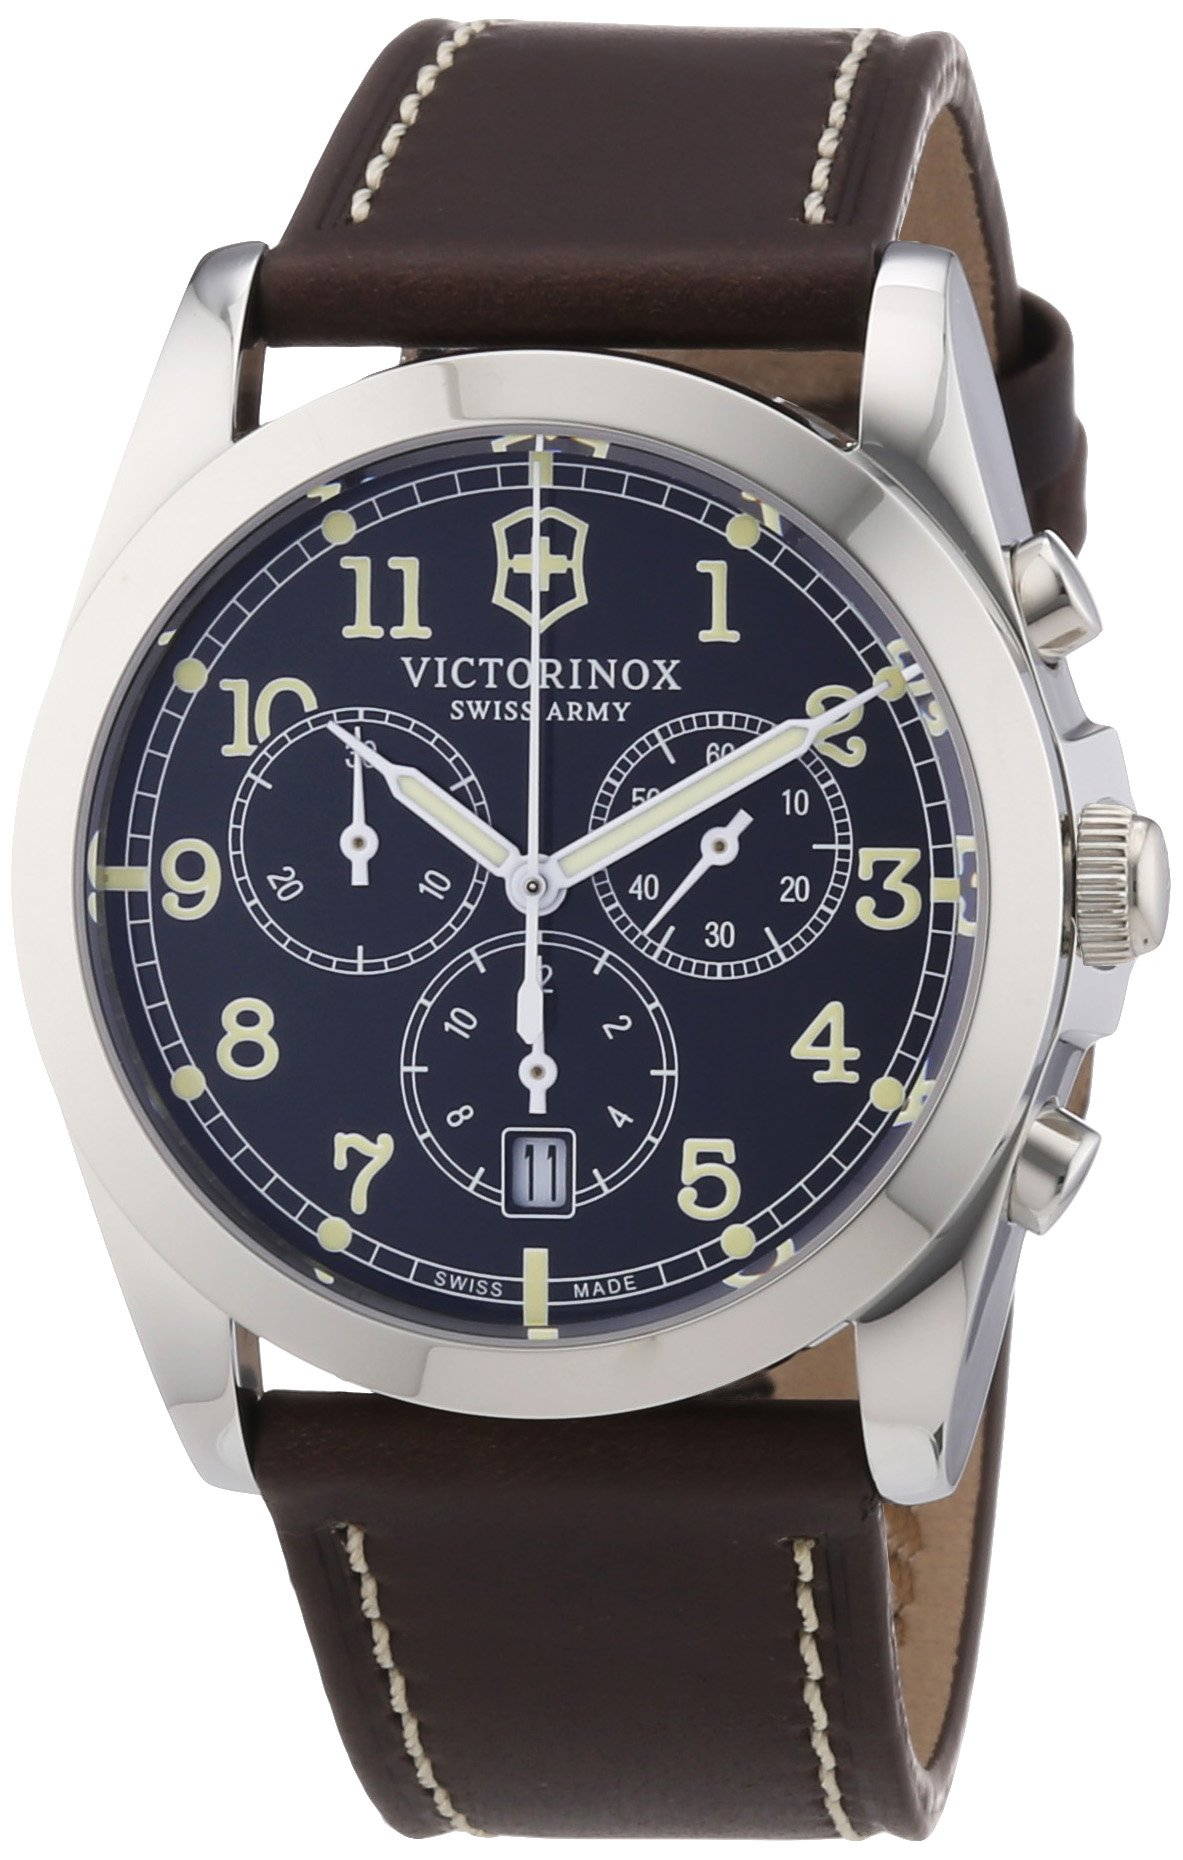 Victorinox Men's 241567 Infantry Chronograph Brown Stainless Steel Watch by Victorinox